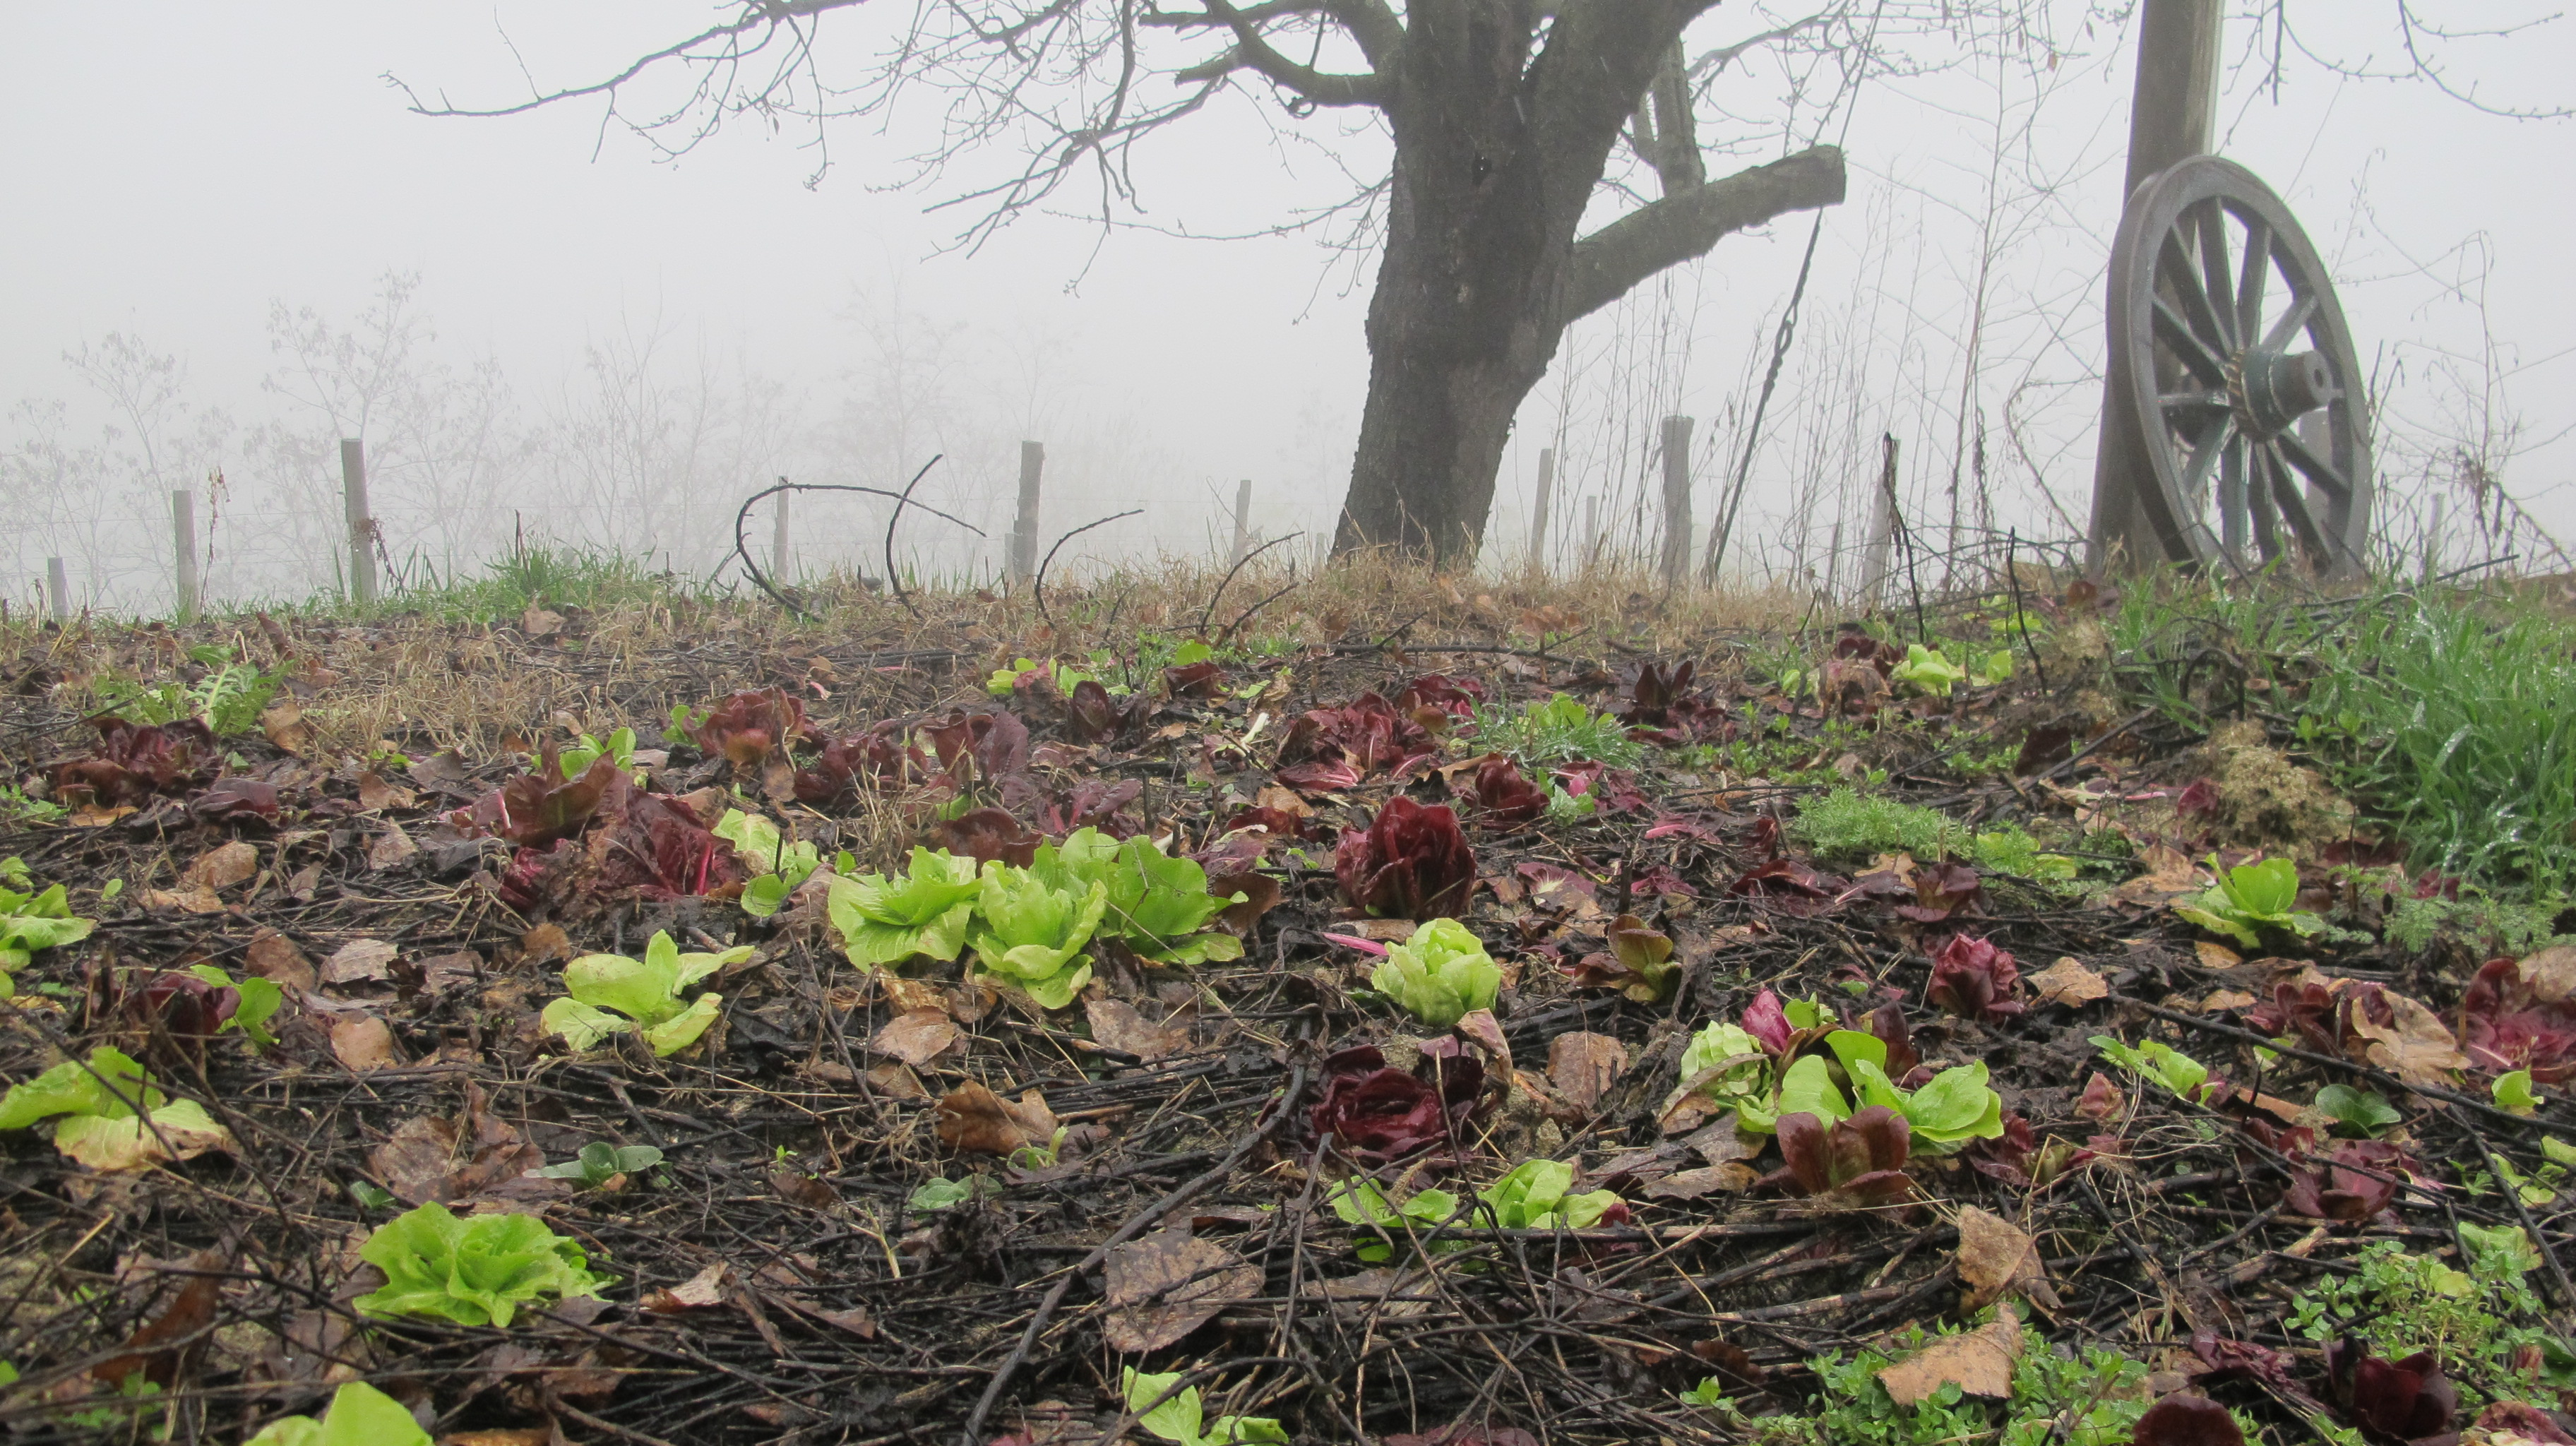 Right above the vineyards, we have a little radicchio and lettuce growing.